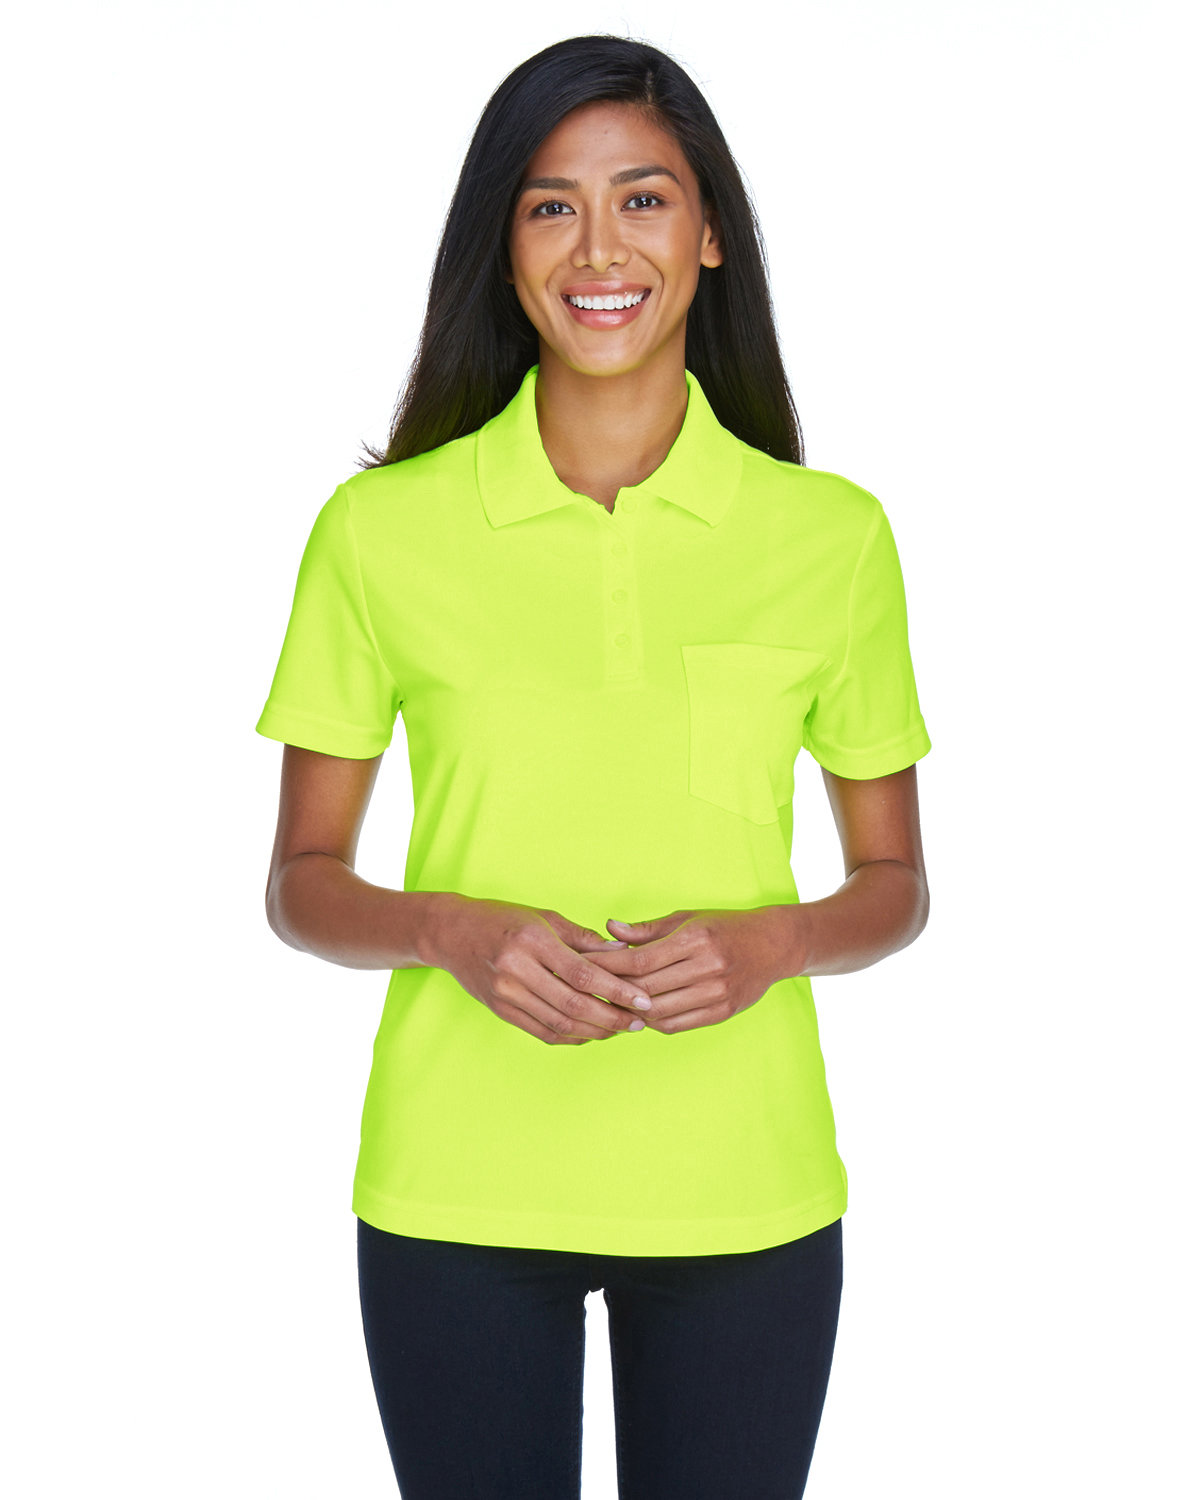 Core 365 Ladies' Origin Performance Piqué Polo with Pocket SAFETY YELLOW